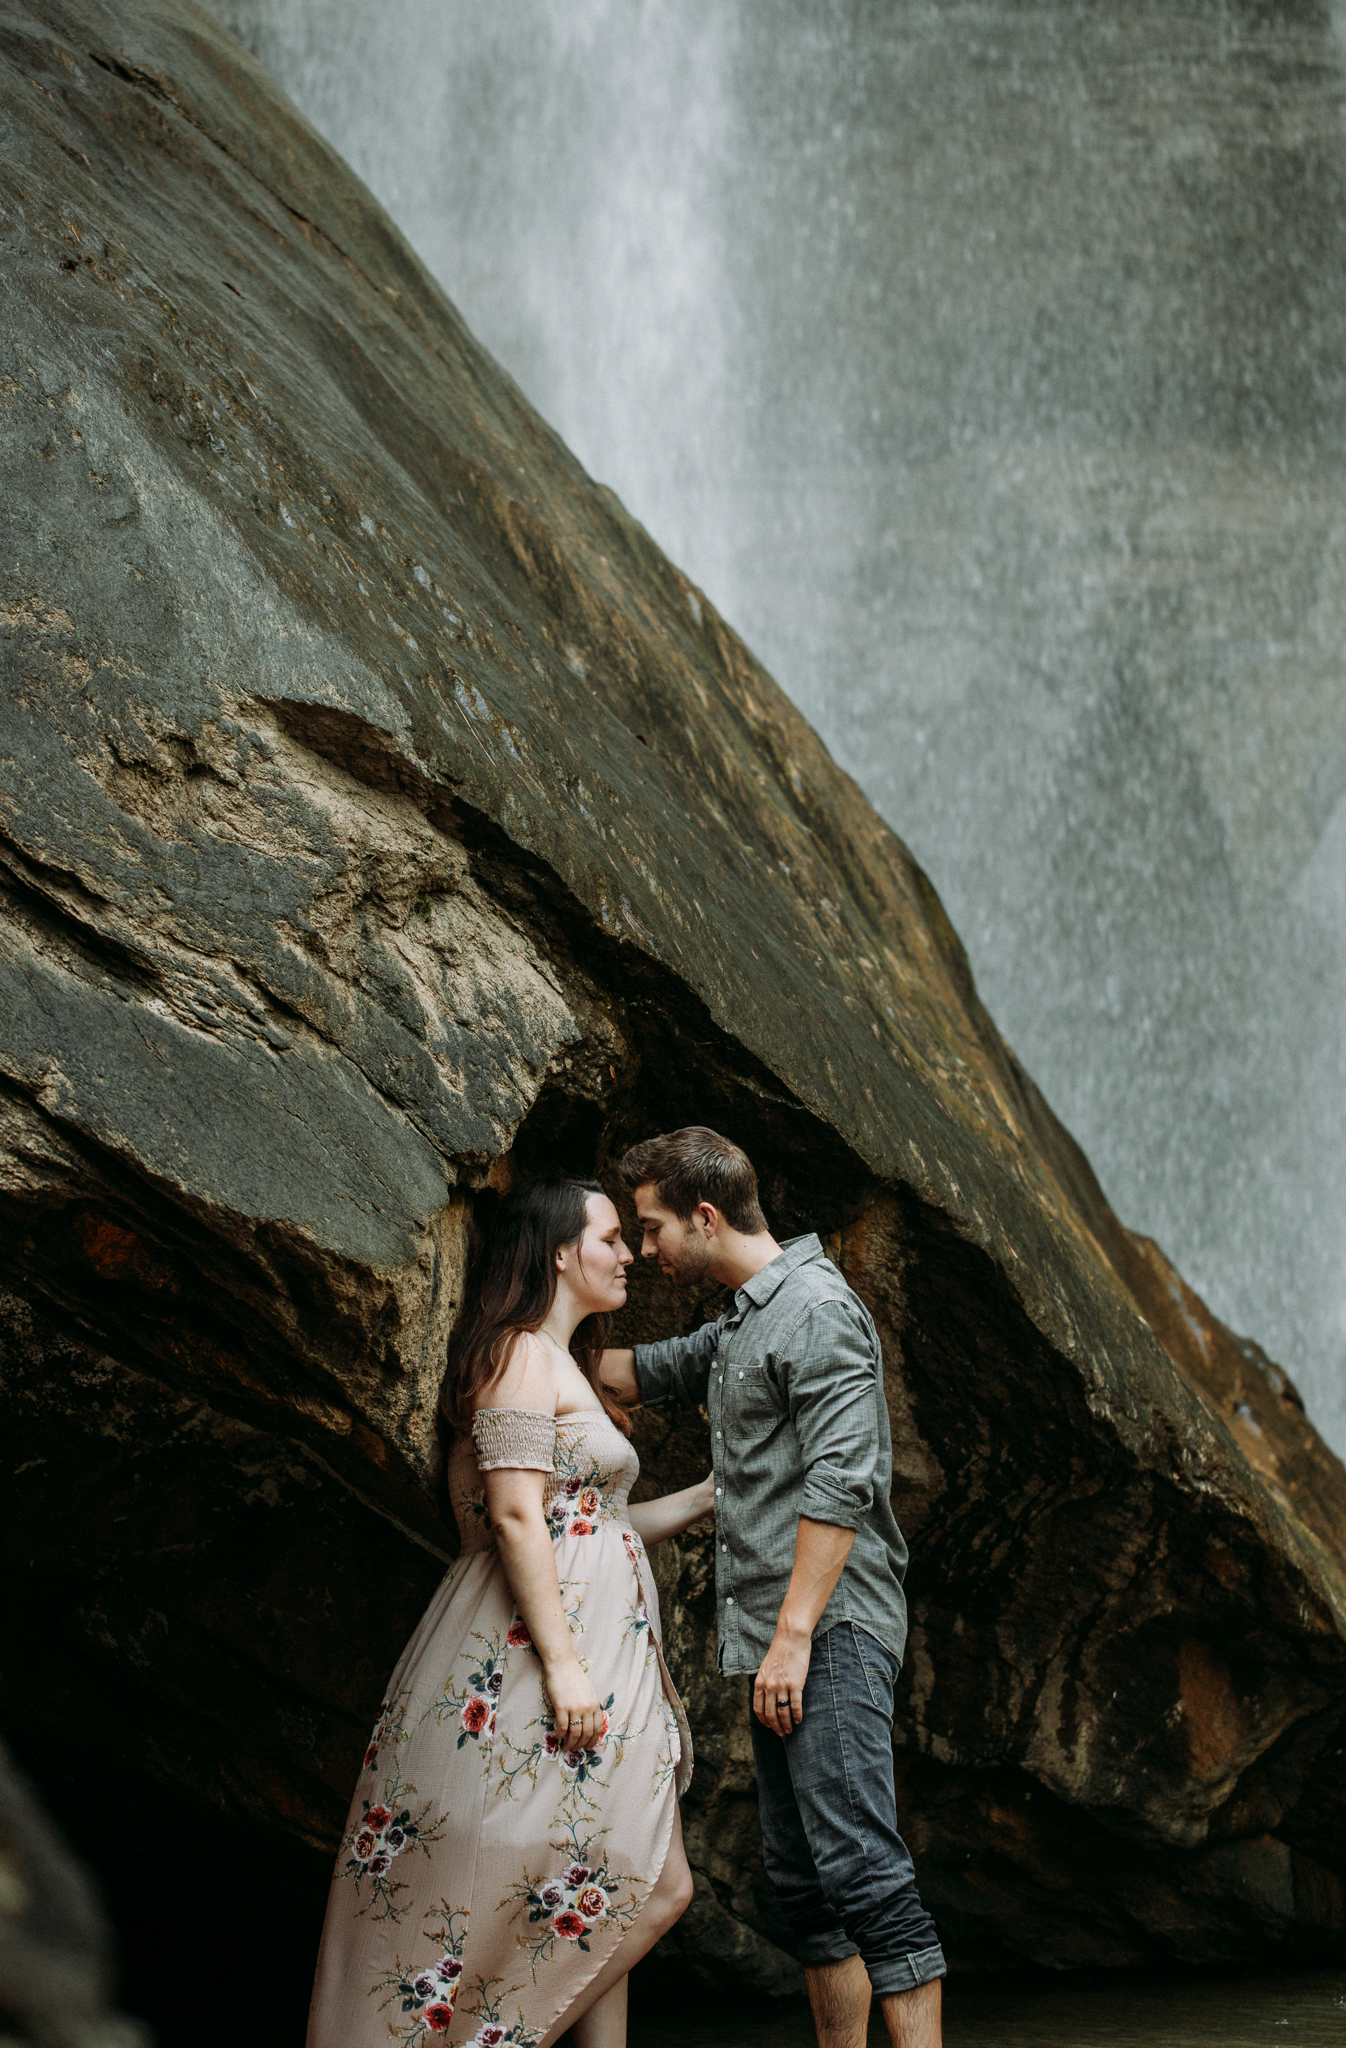 MonicaLeavell-Carolinas-Georgia-Adventure-Engagement-Photographer-51.jpg